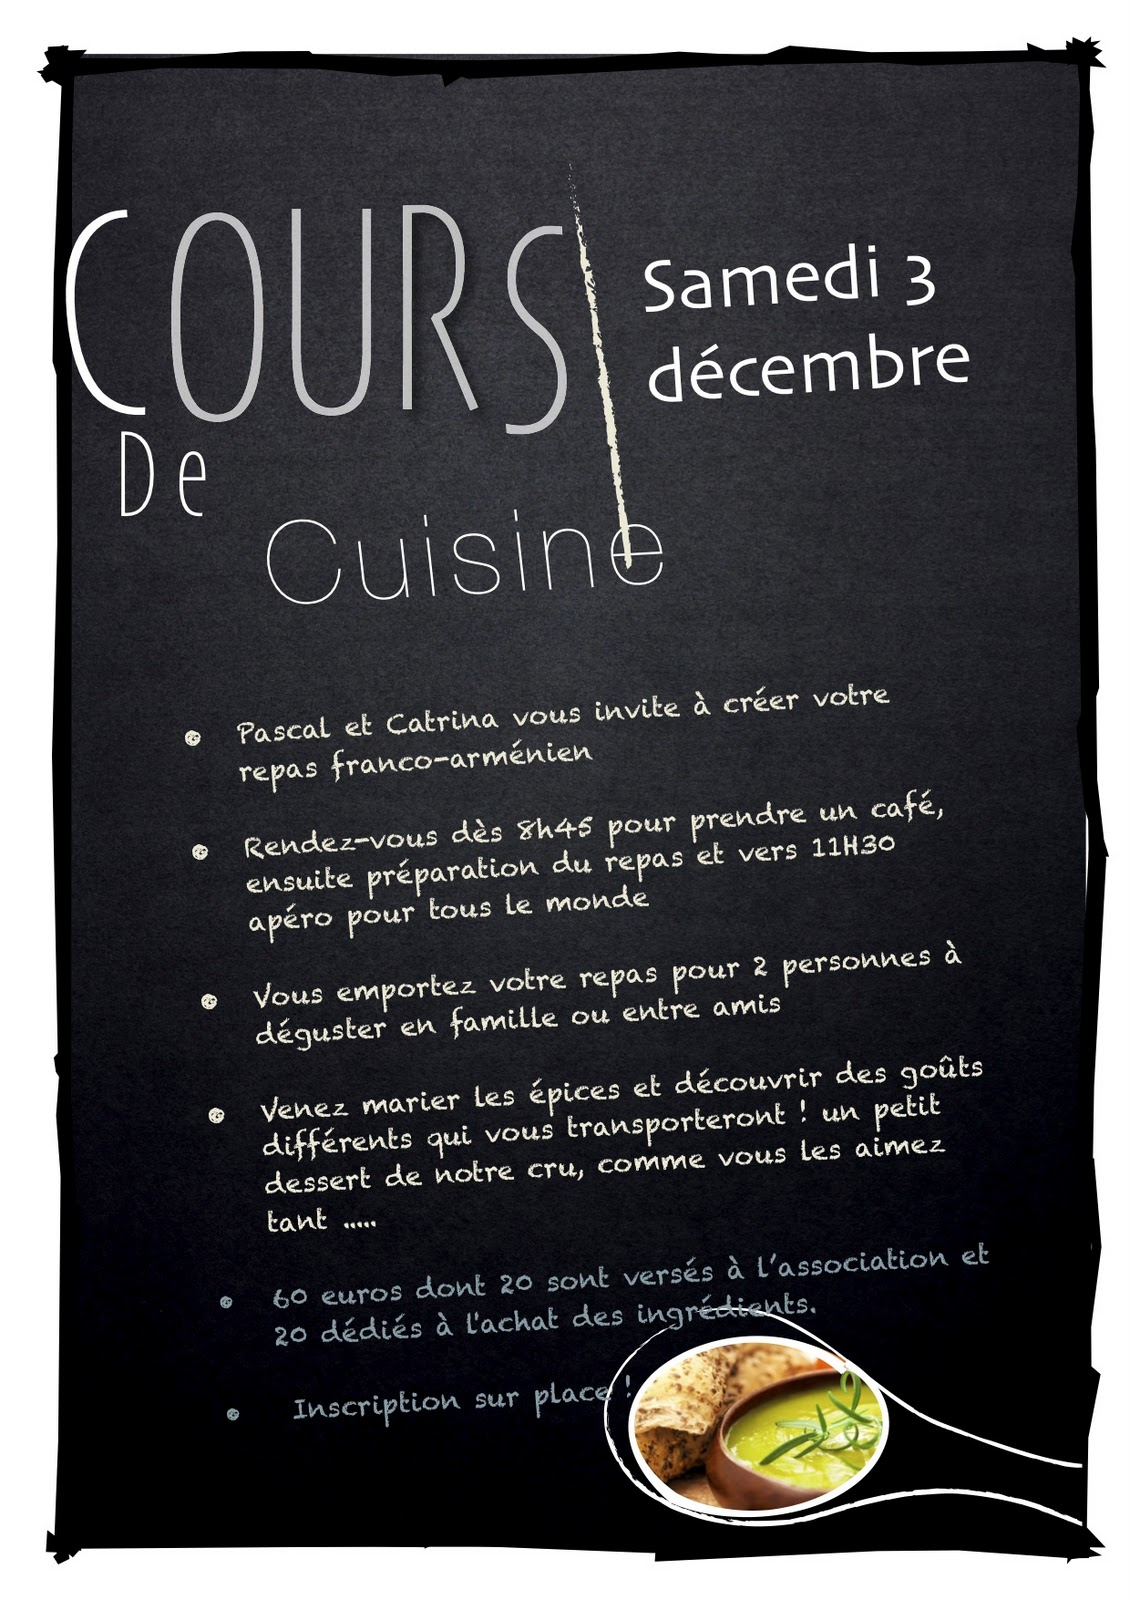 cosy restaurant nantes affiche cours de cuisine. Black Bedroom Furniture Sets. Home Design Ideas